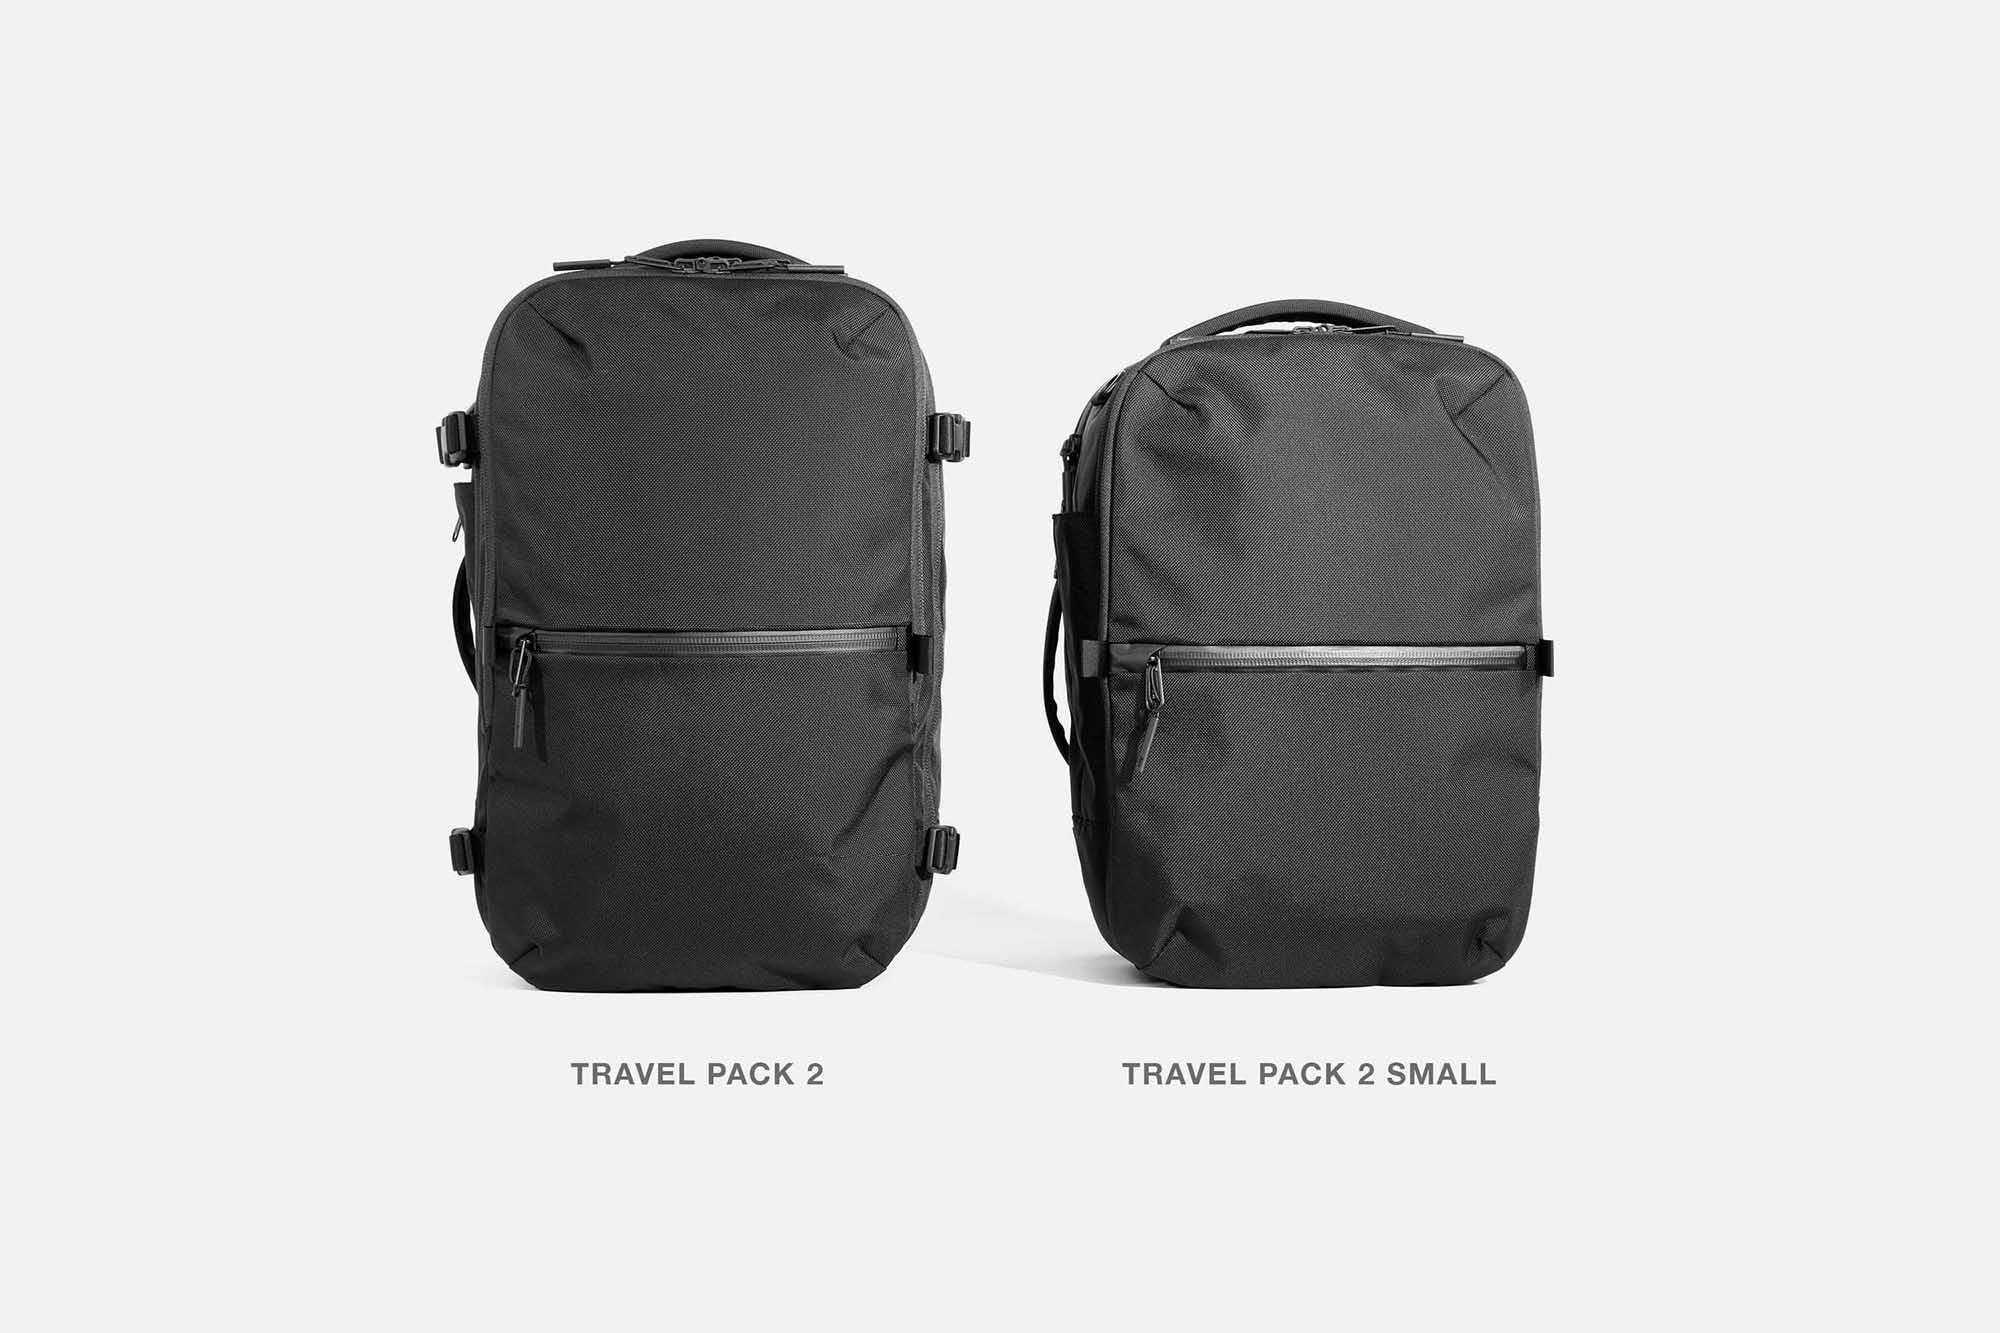 AER21022_travelpack2small_combotext1.jpg